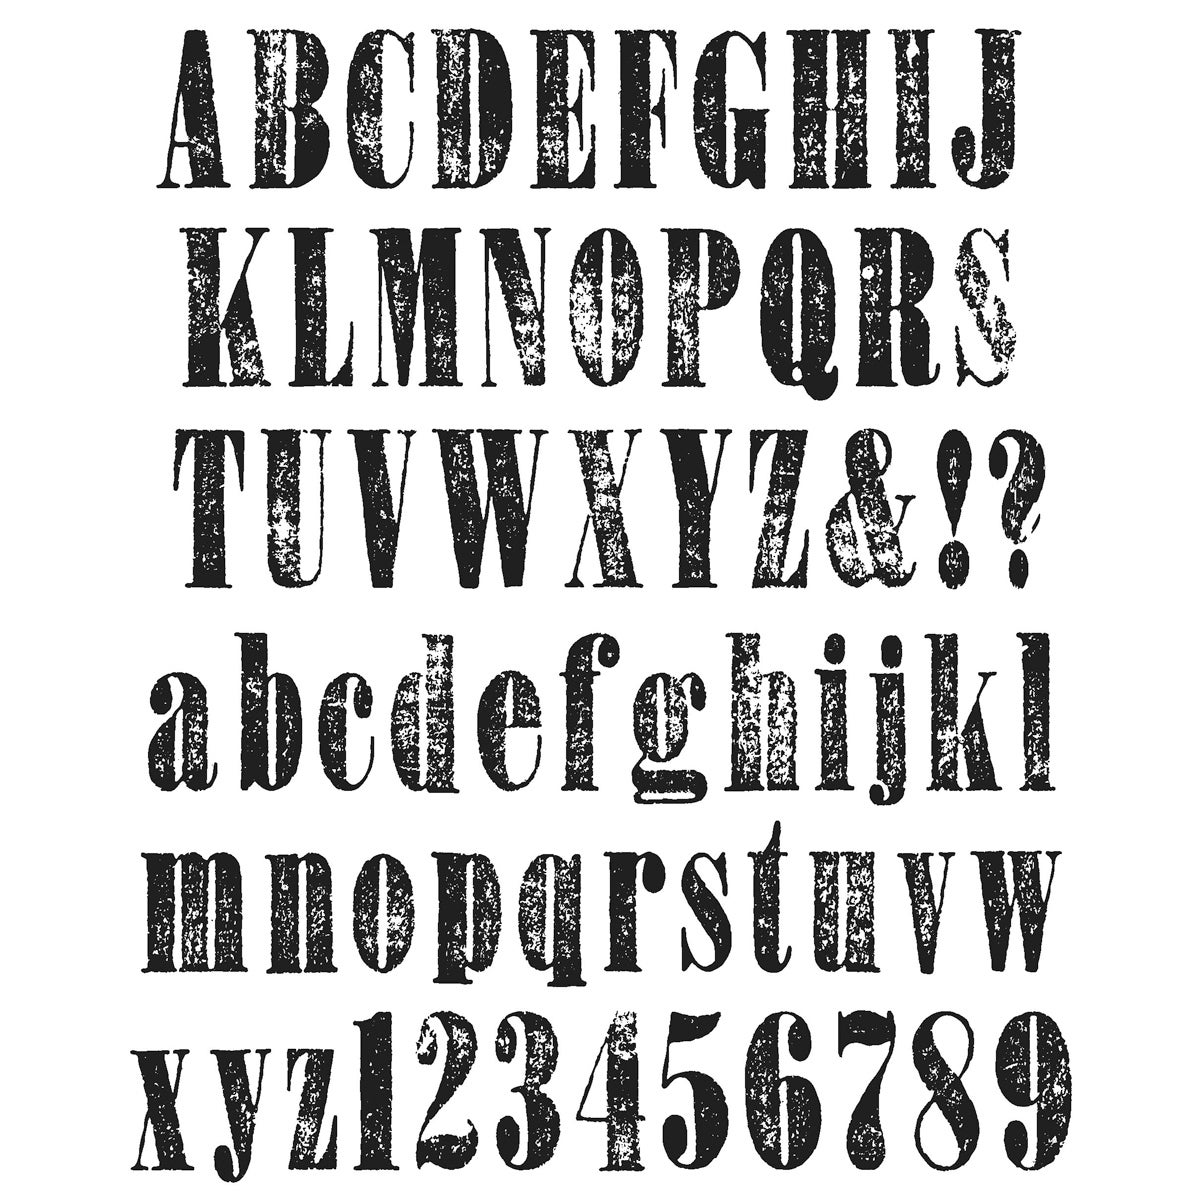 Stampers Tim Holtz Large Cling Rubber Stamp Set-Worn Text...